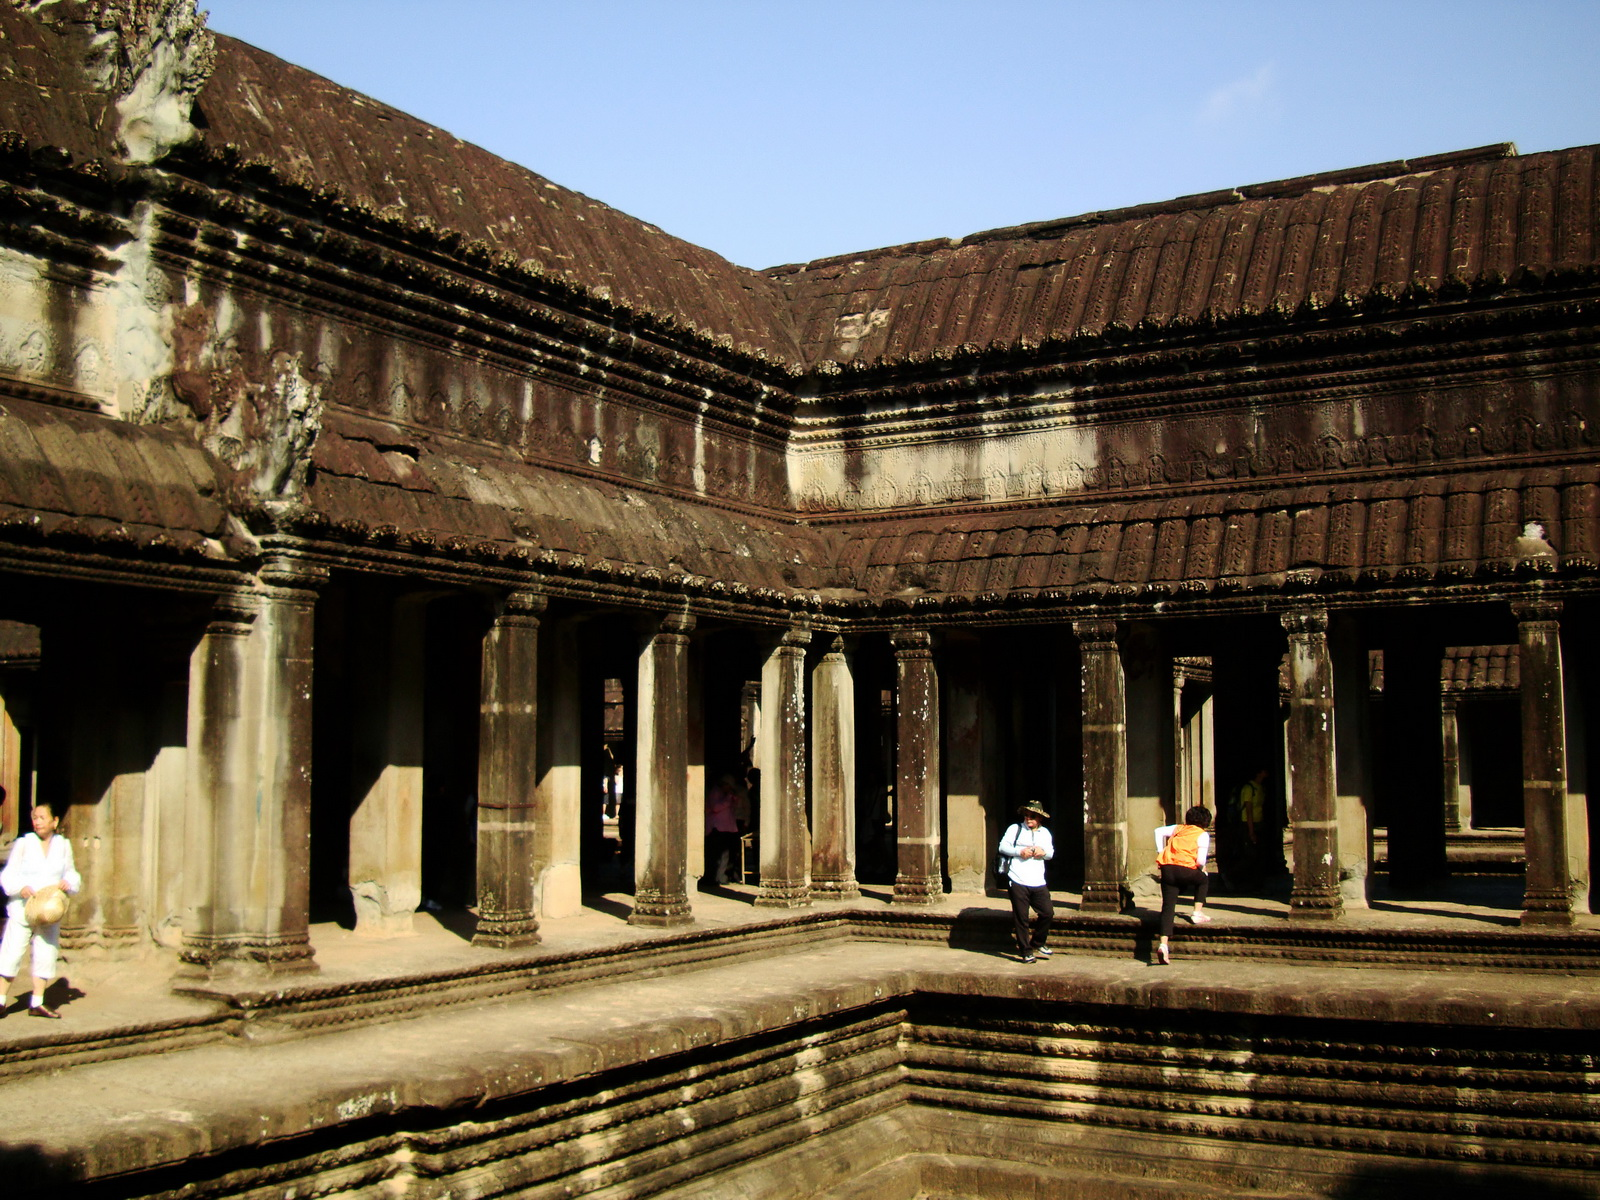 Angkor Wat inner sanctuary gallery columns and passageways 15